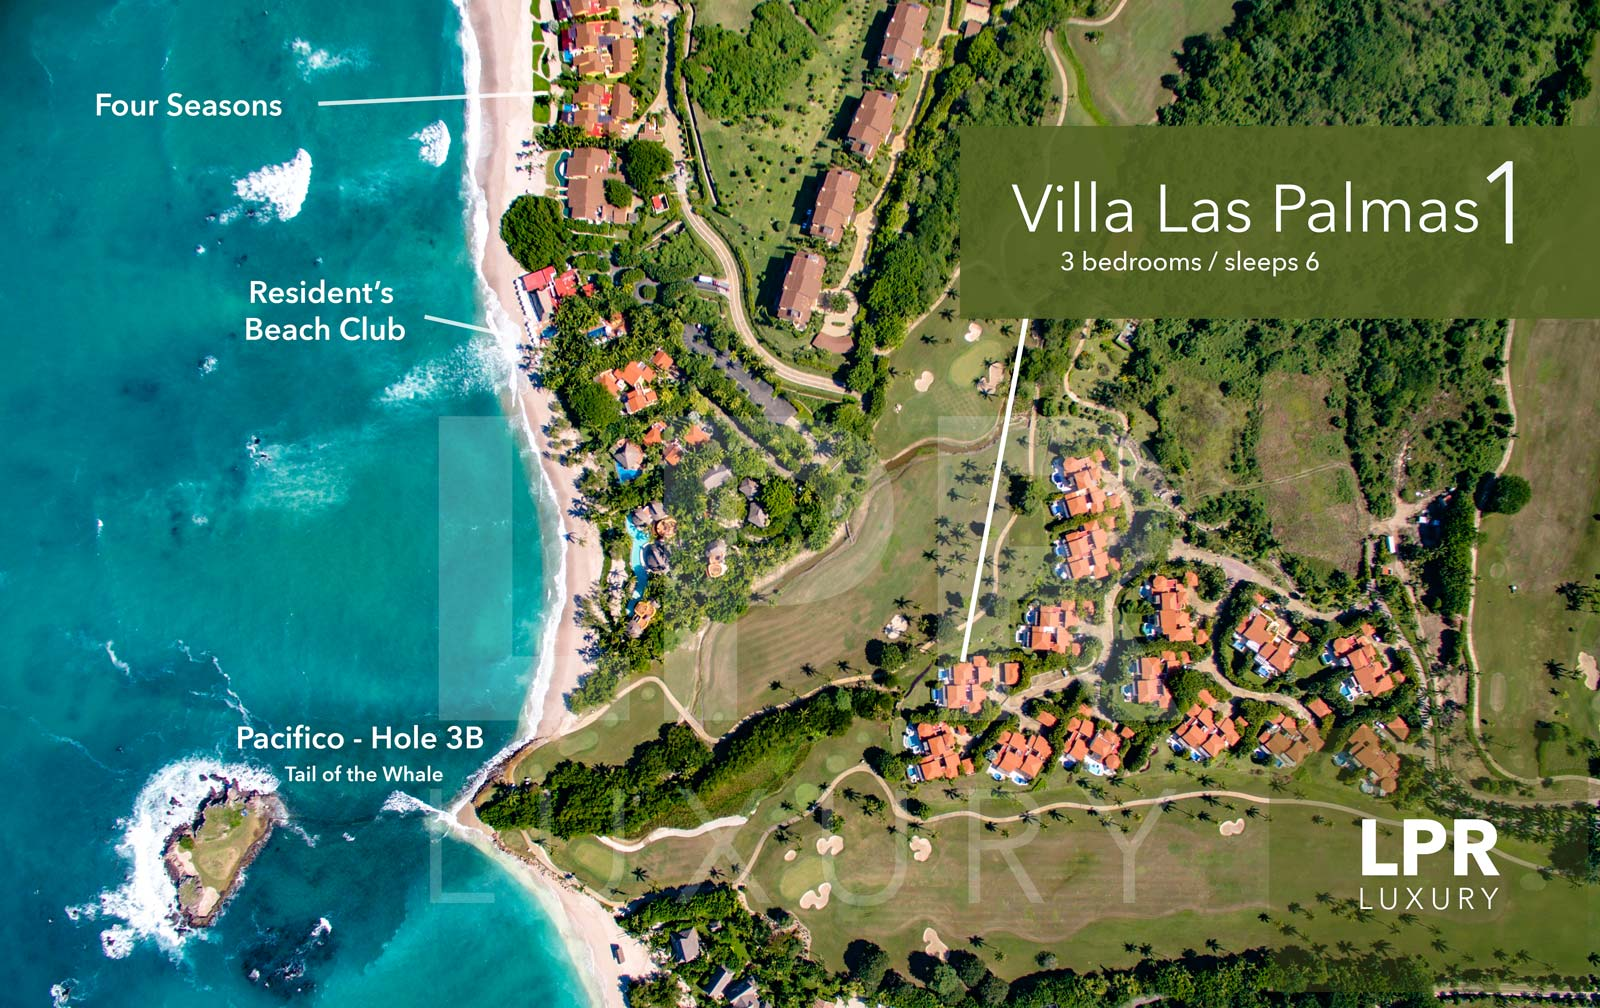 Villa Las Palmas 1 - Ocean view golf course villa at the Punta Mita Resort, Riviera Nayarit, Mexico - Vacation rentals and real estate